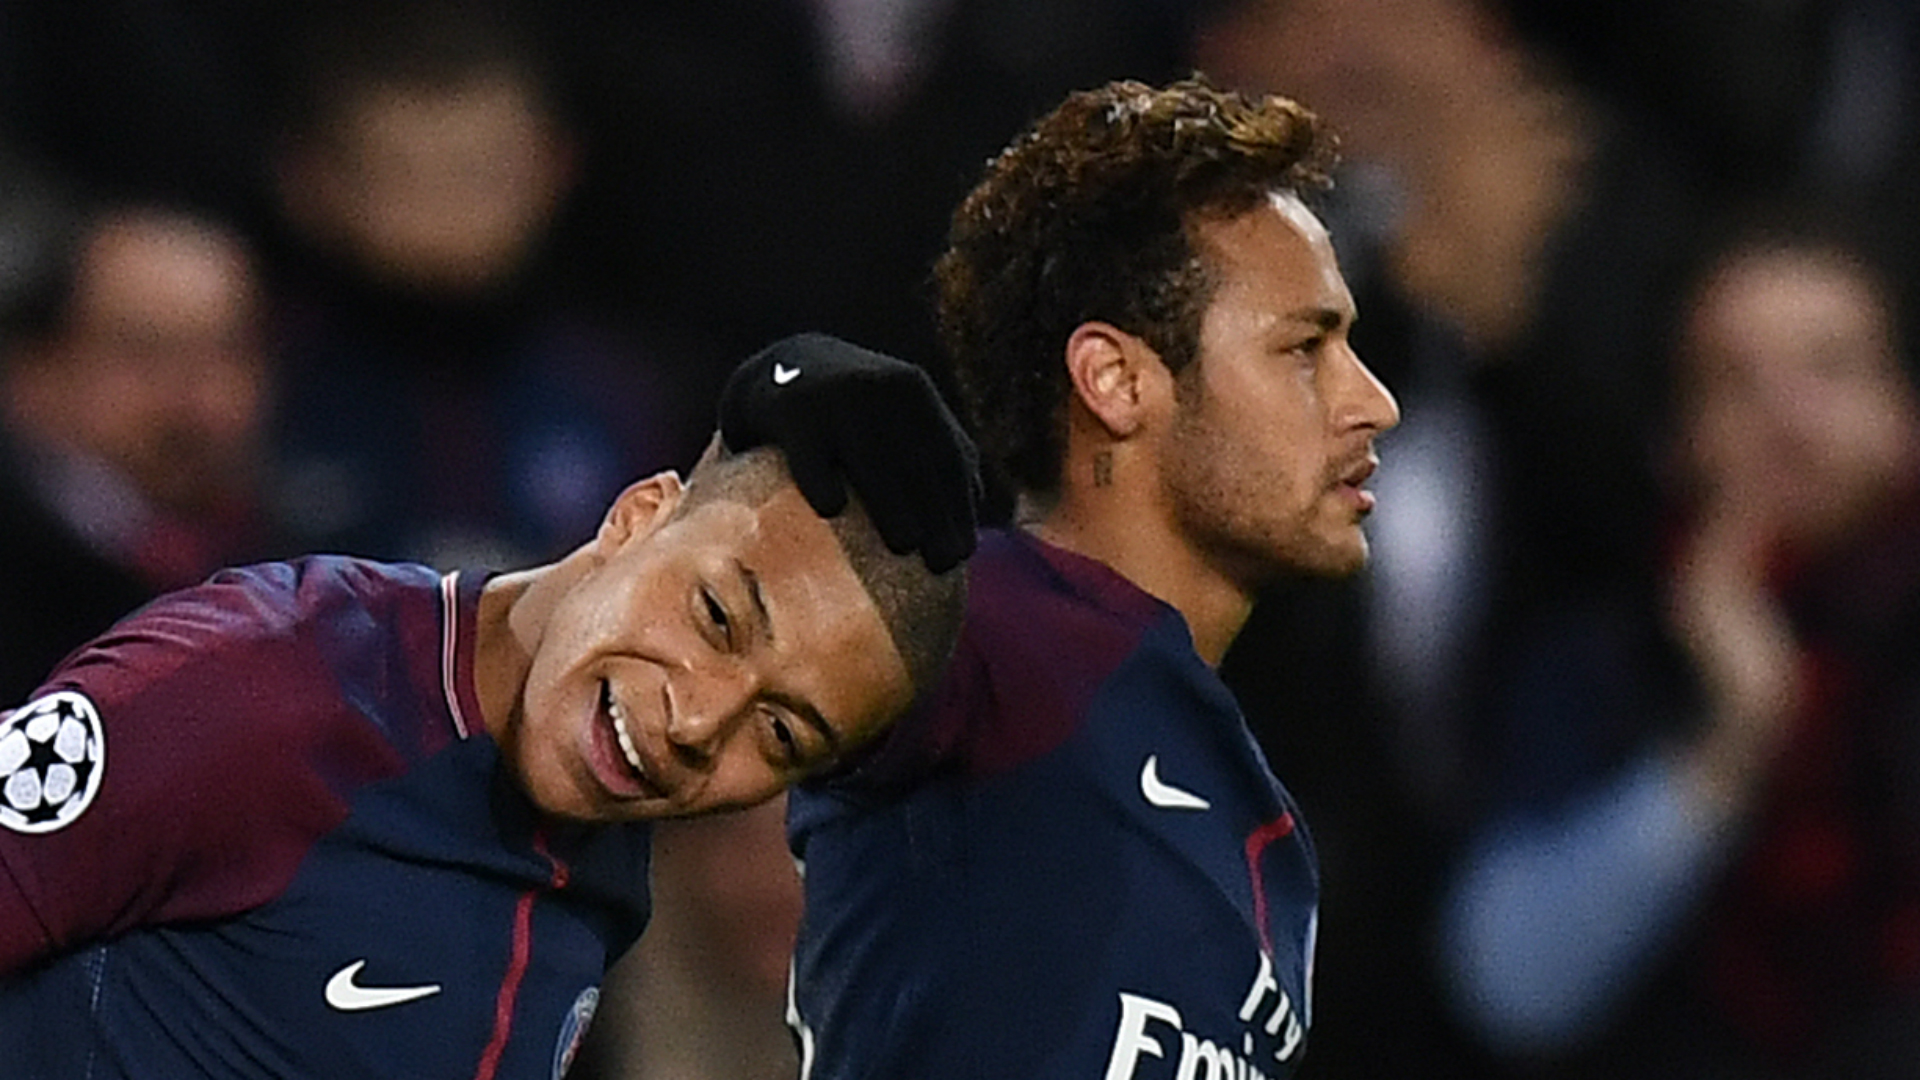 Ligue 1 2018-19: Neymar's star risks being eclipsed by Mbappe